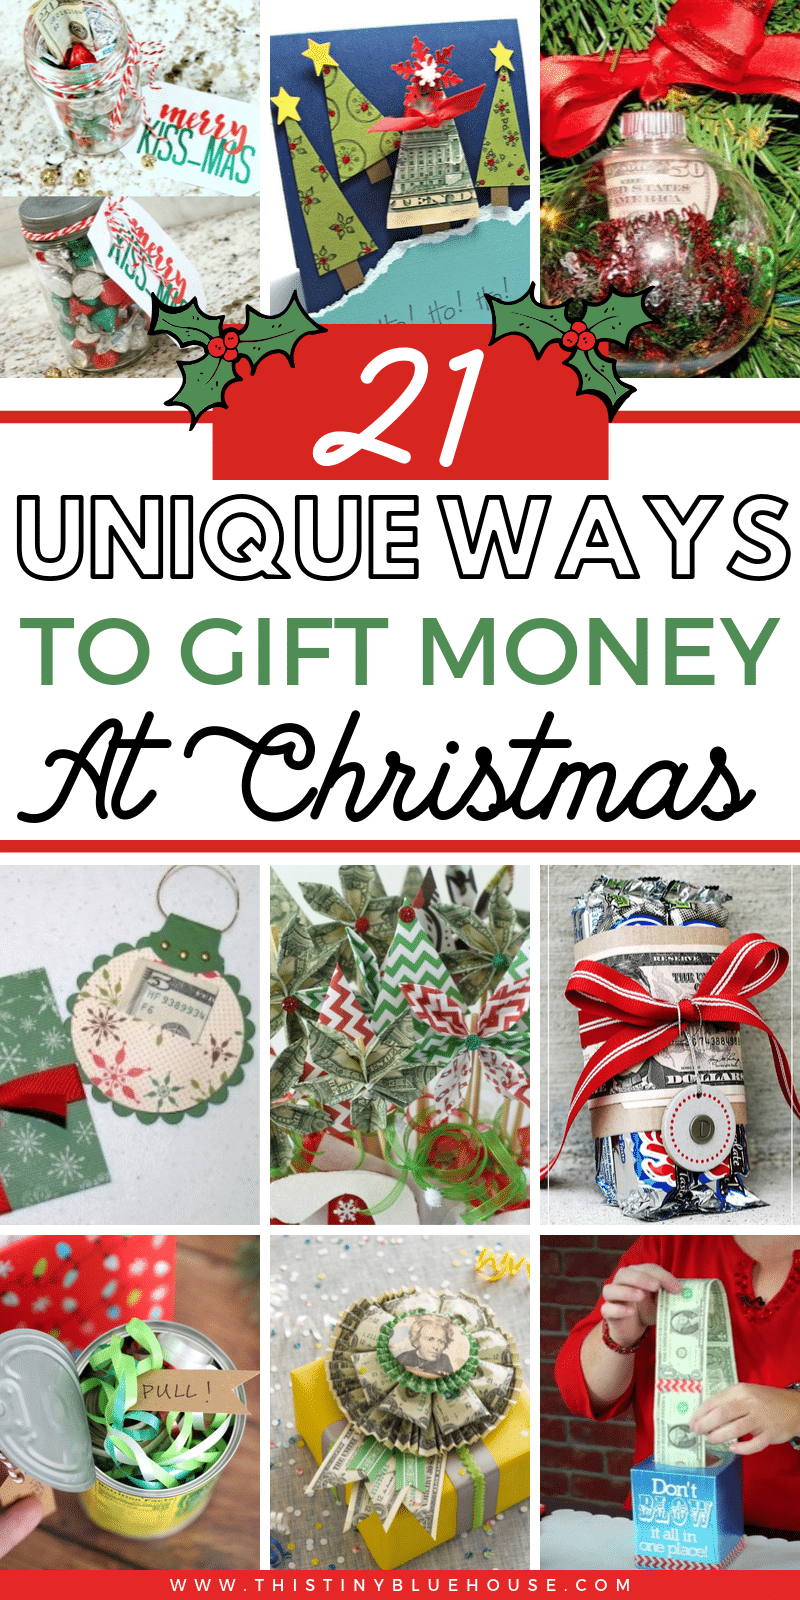 Make gifting money fun & festive with these unique Christmas money gifts. These best ways to give money gifts are the ultimate way to give the gift of cash. #moneygifts #moneygiftideas #moneygiftchristmas #creativemoneygift #moneygiftforkids #moneygiftideasunique #holidaymoneygifts #christmasmoneygifts